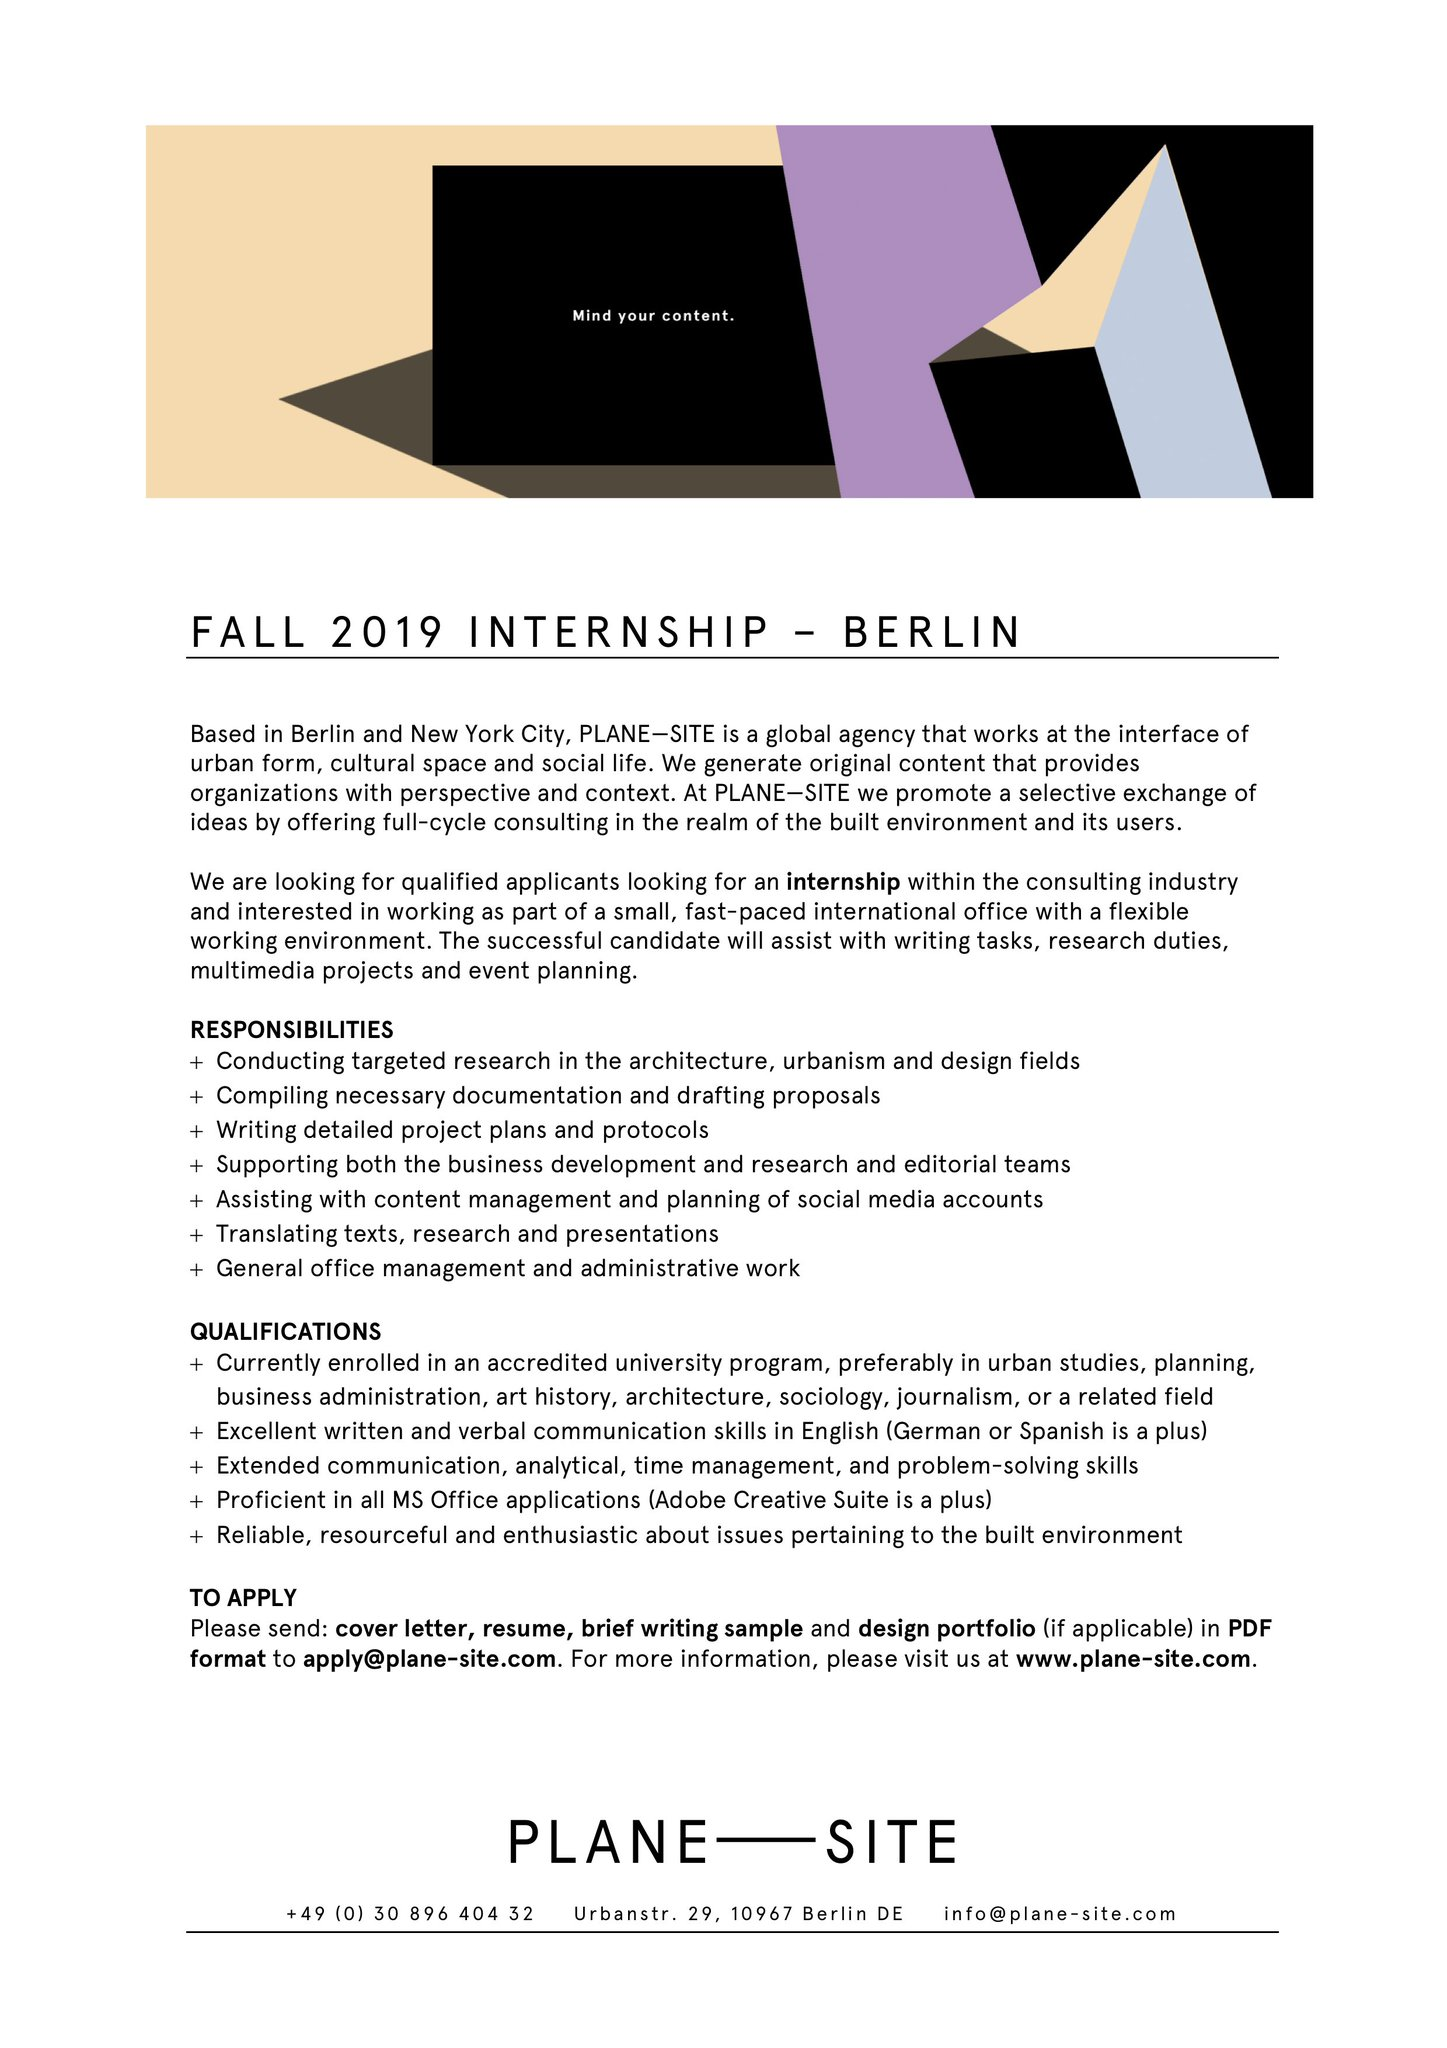 Plane Site On Twitter Join Plane Site As Our New Fall 2019 Intern At Our Berlin Office Instructions For Applying Can Be Found In The Document Below Https T Co Rs7l5a6yte